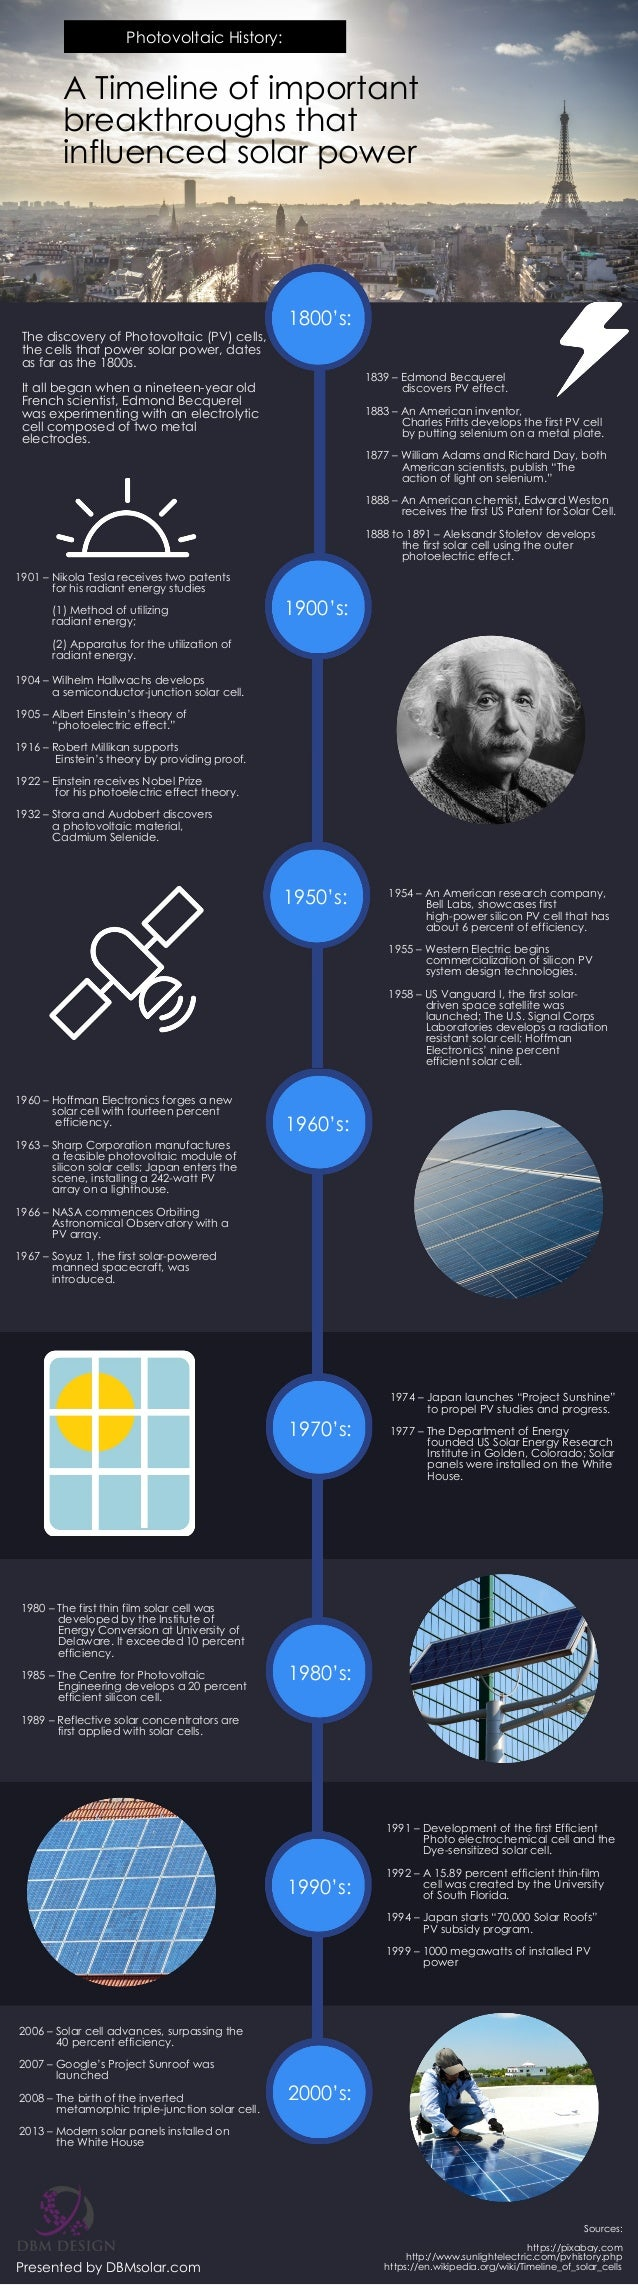 A Timeline of important breakthroughs that influenced solar power Photovoltaic History: The discovery of Photovoltaic (PV)...